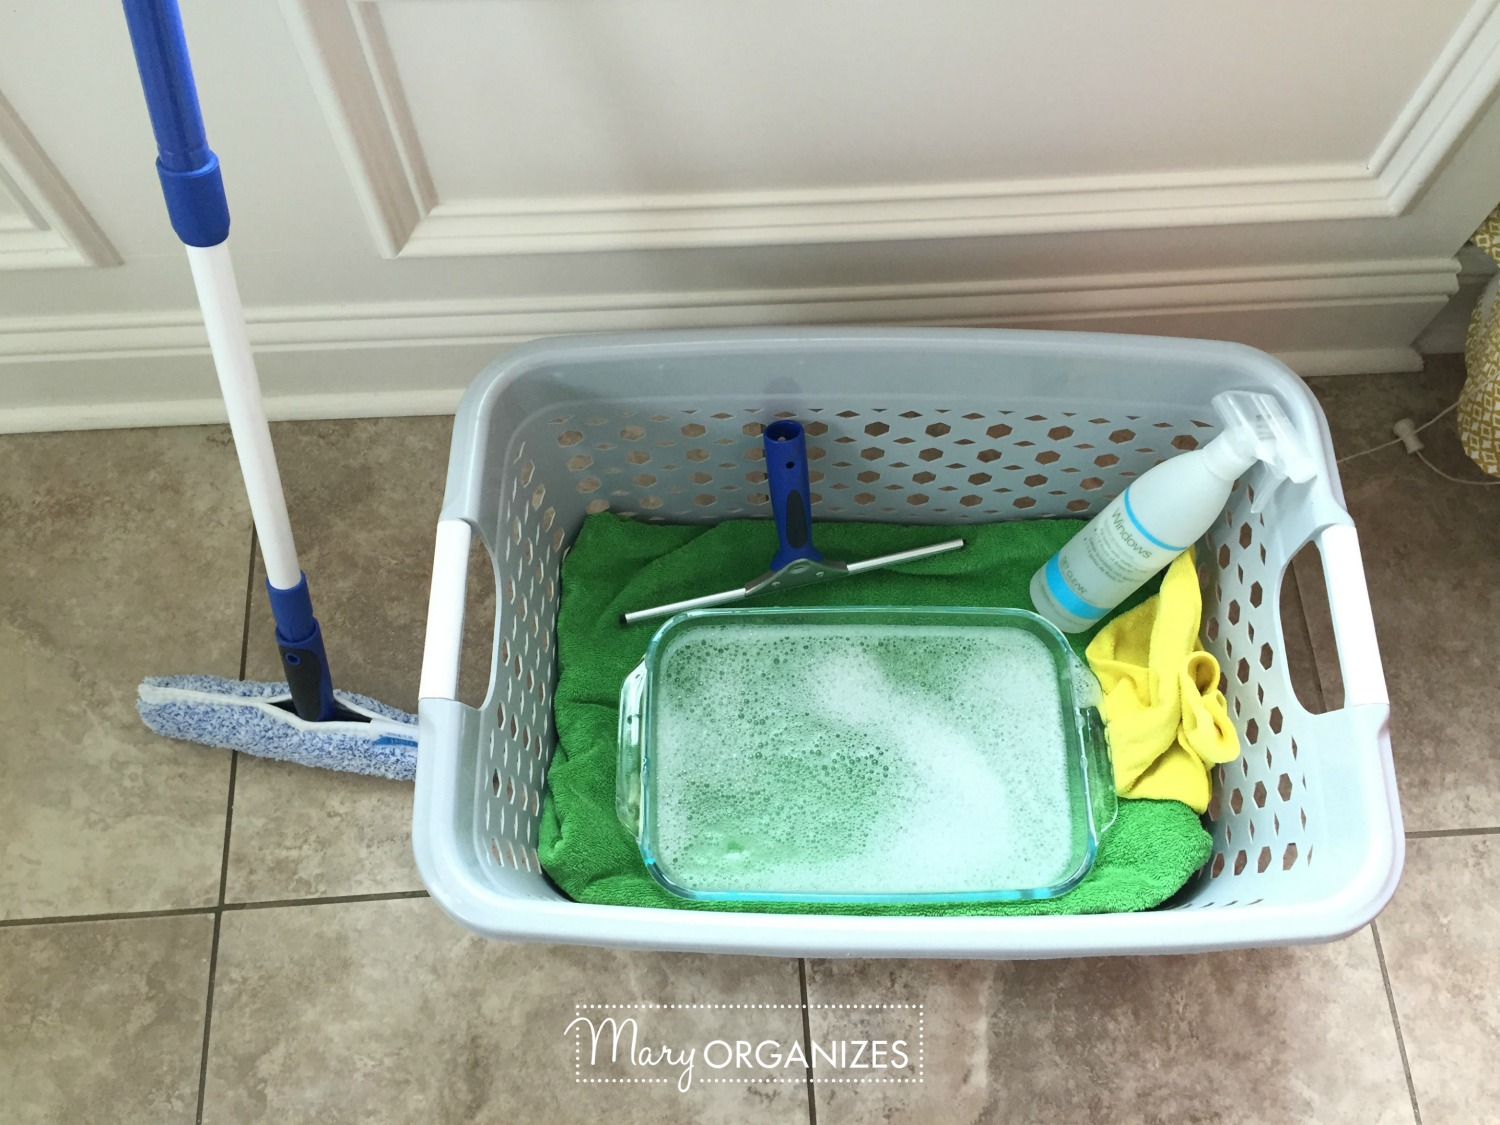 Two Ways To Clean Windows - What You Need -h